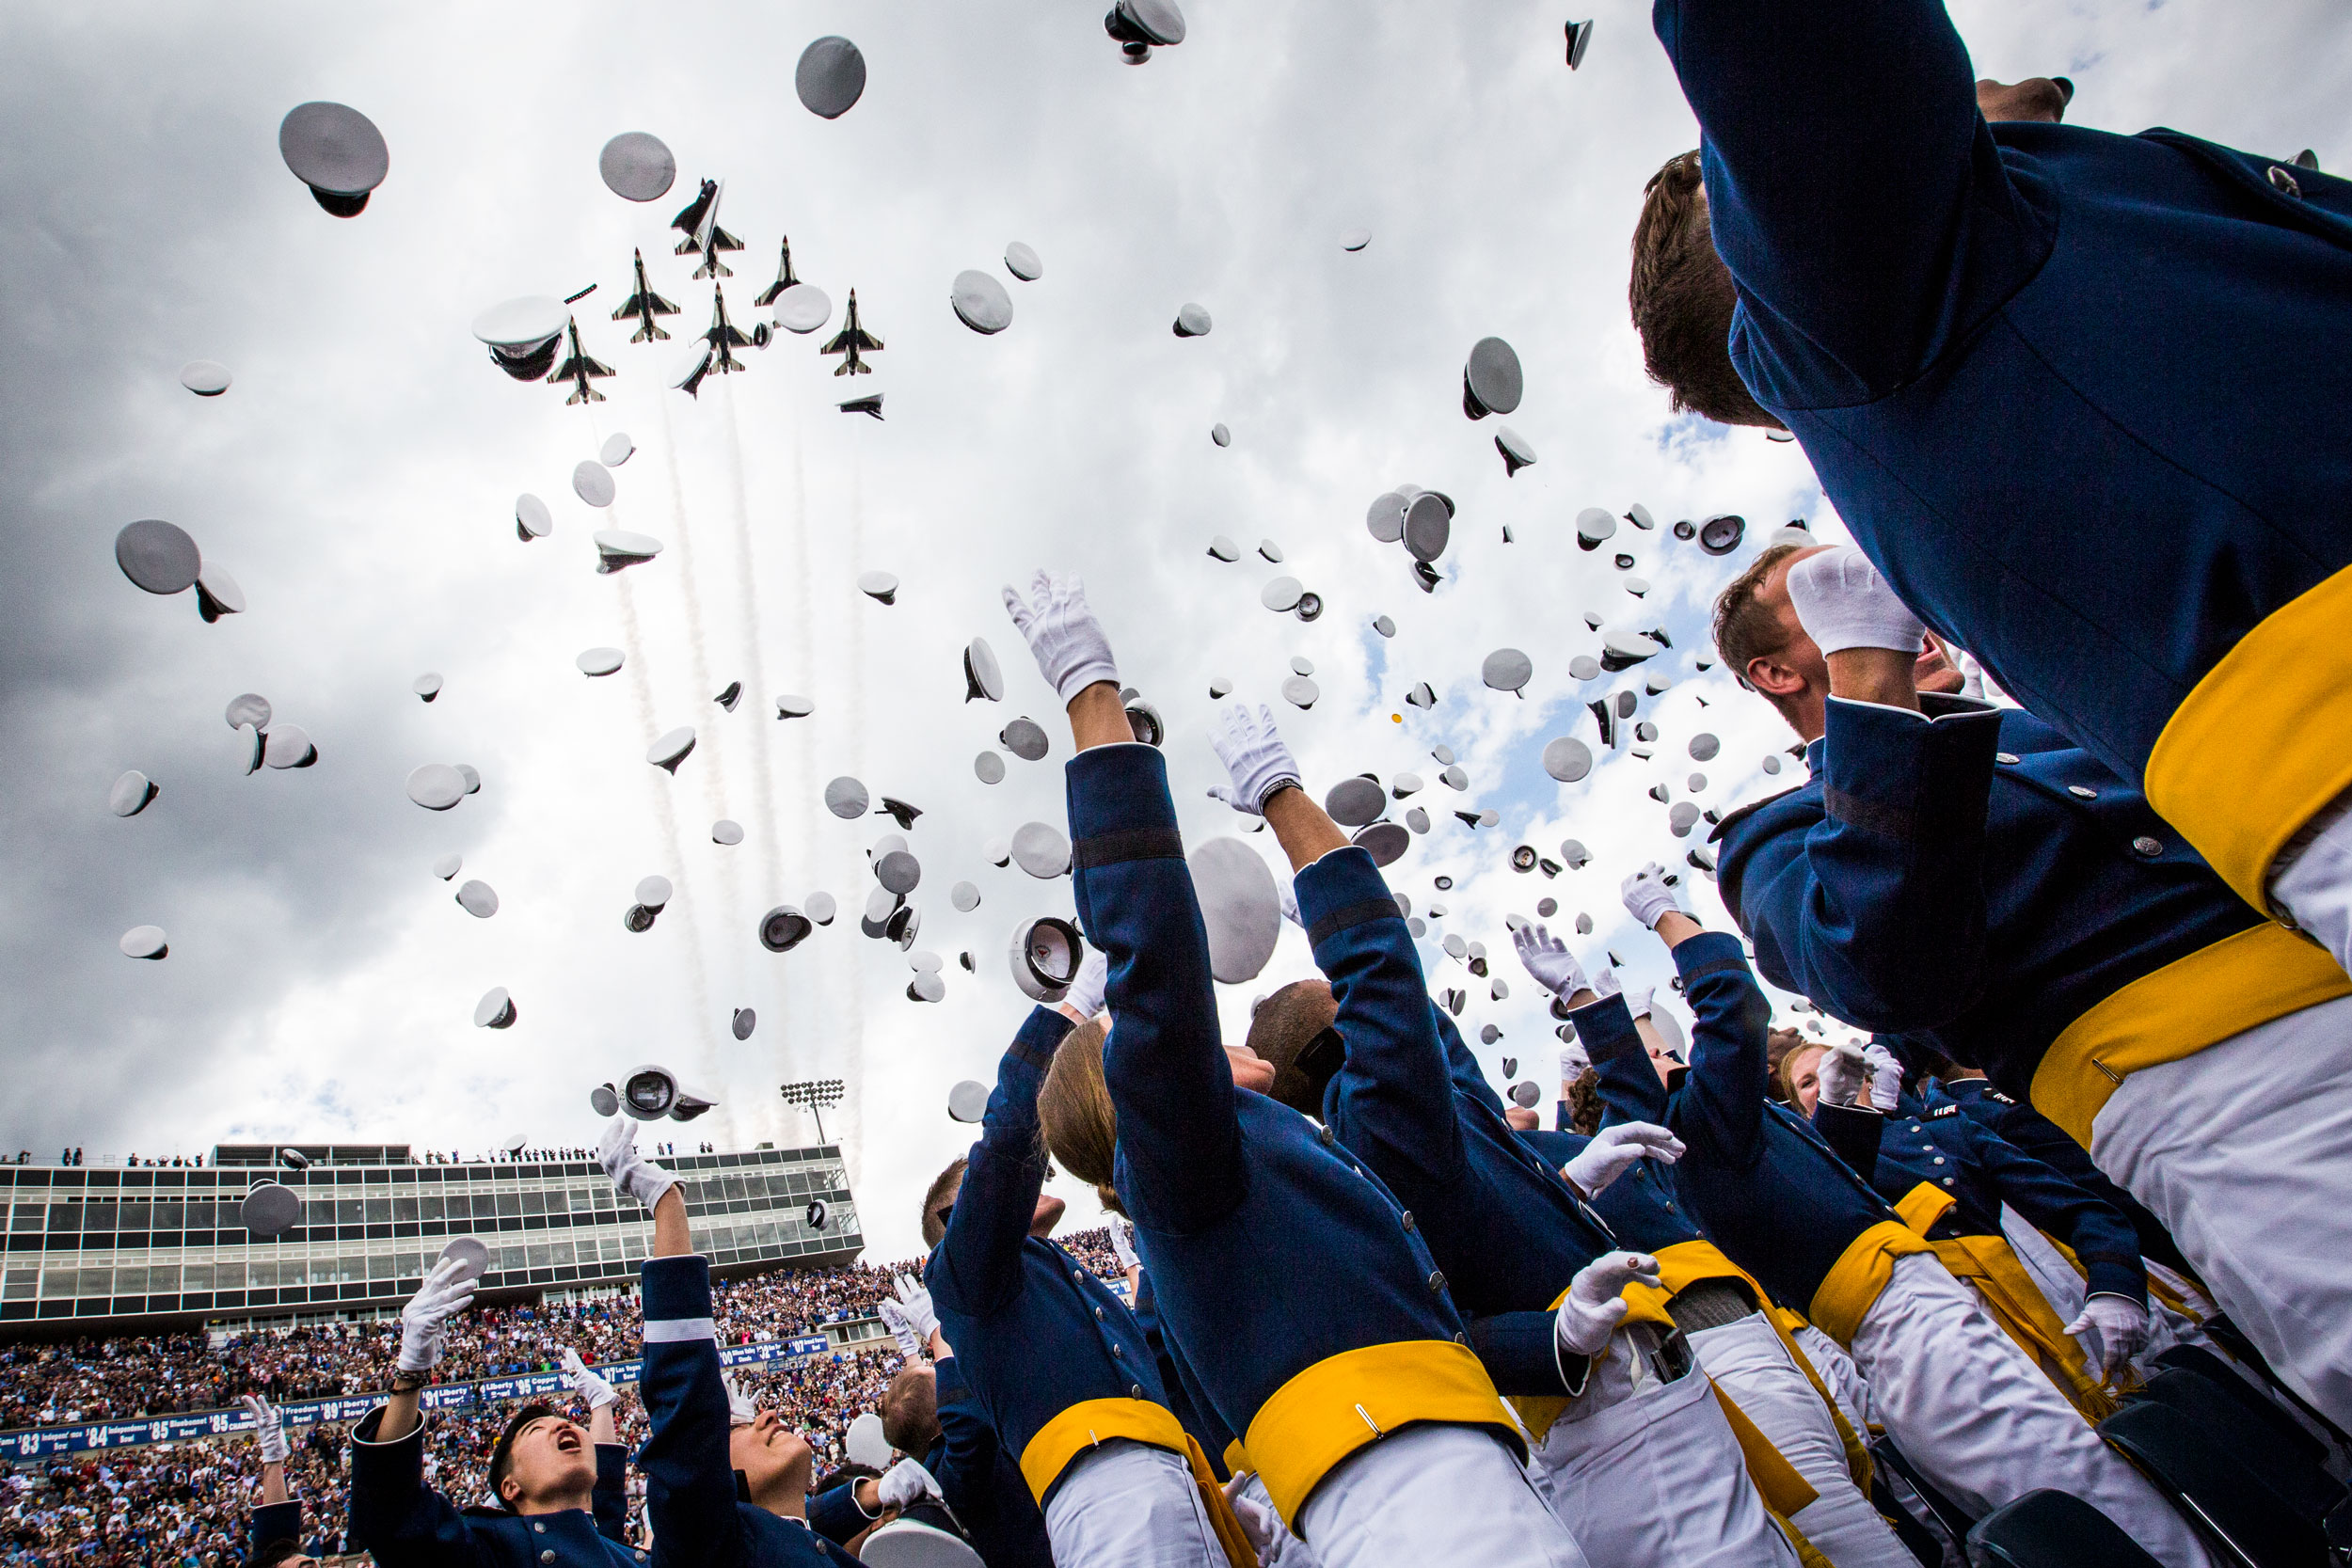 Air Force Academy cadets throw their hats into the air during their May gtraduation ceremony, at the exact moment ther Air Force Thunderbirds precision flying team flies overhead. President Donald Trump delivered the commencement address this year.